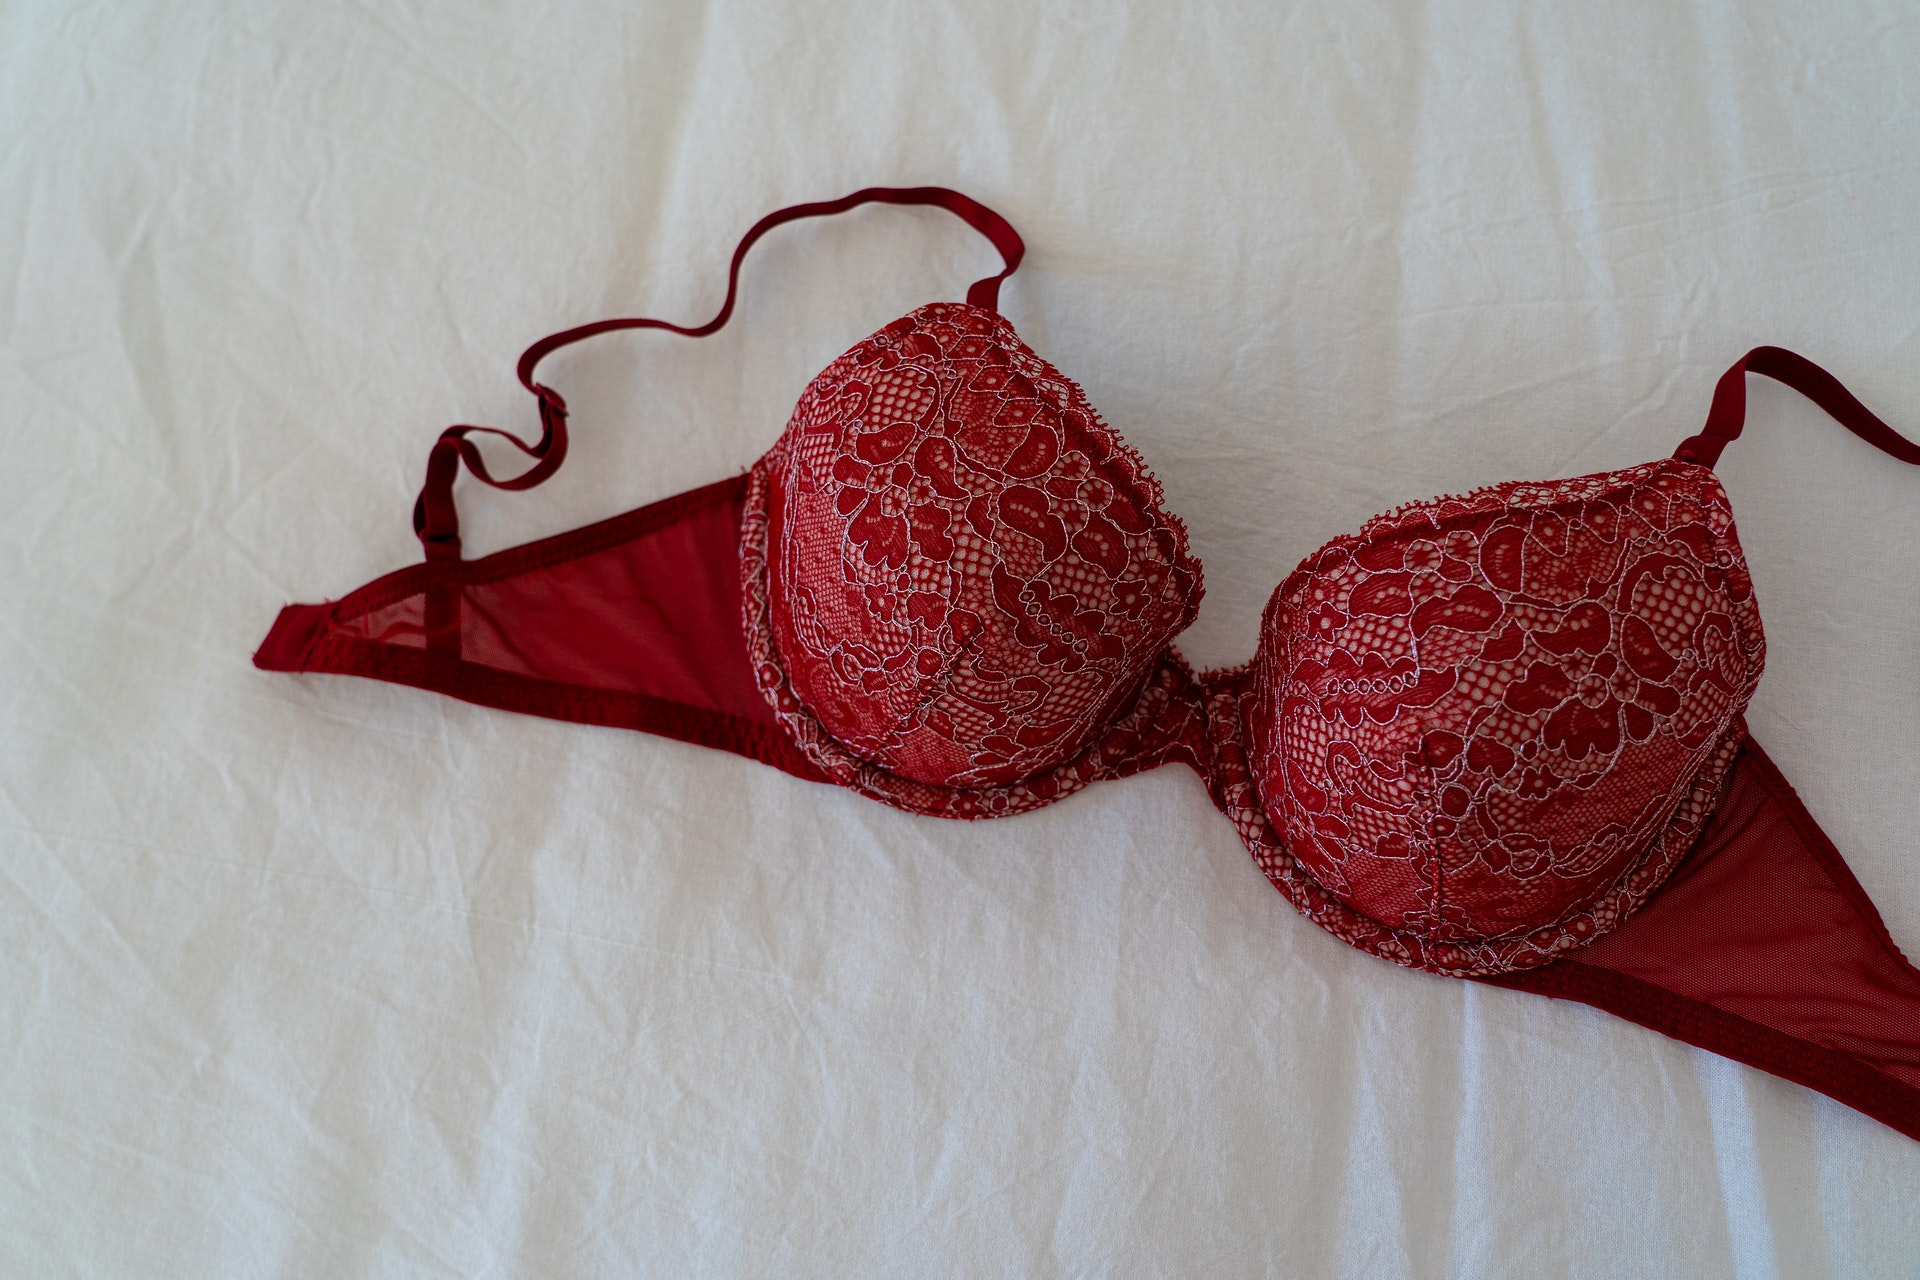 How to Wash and Care for Your Bras